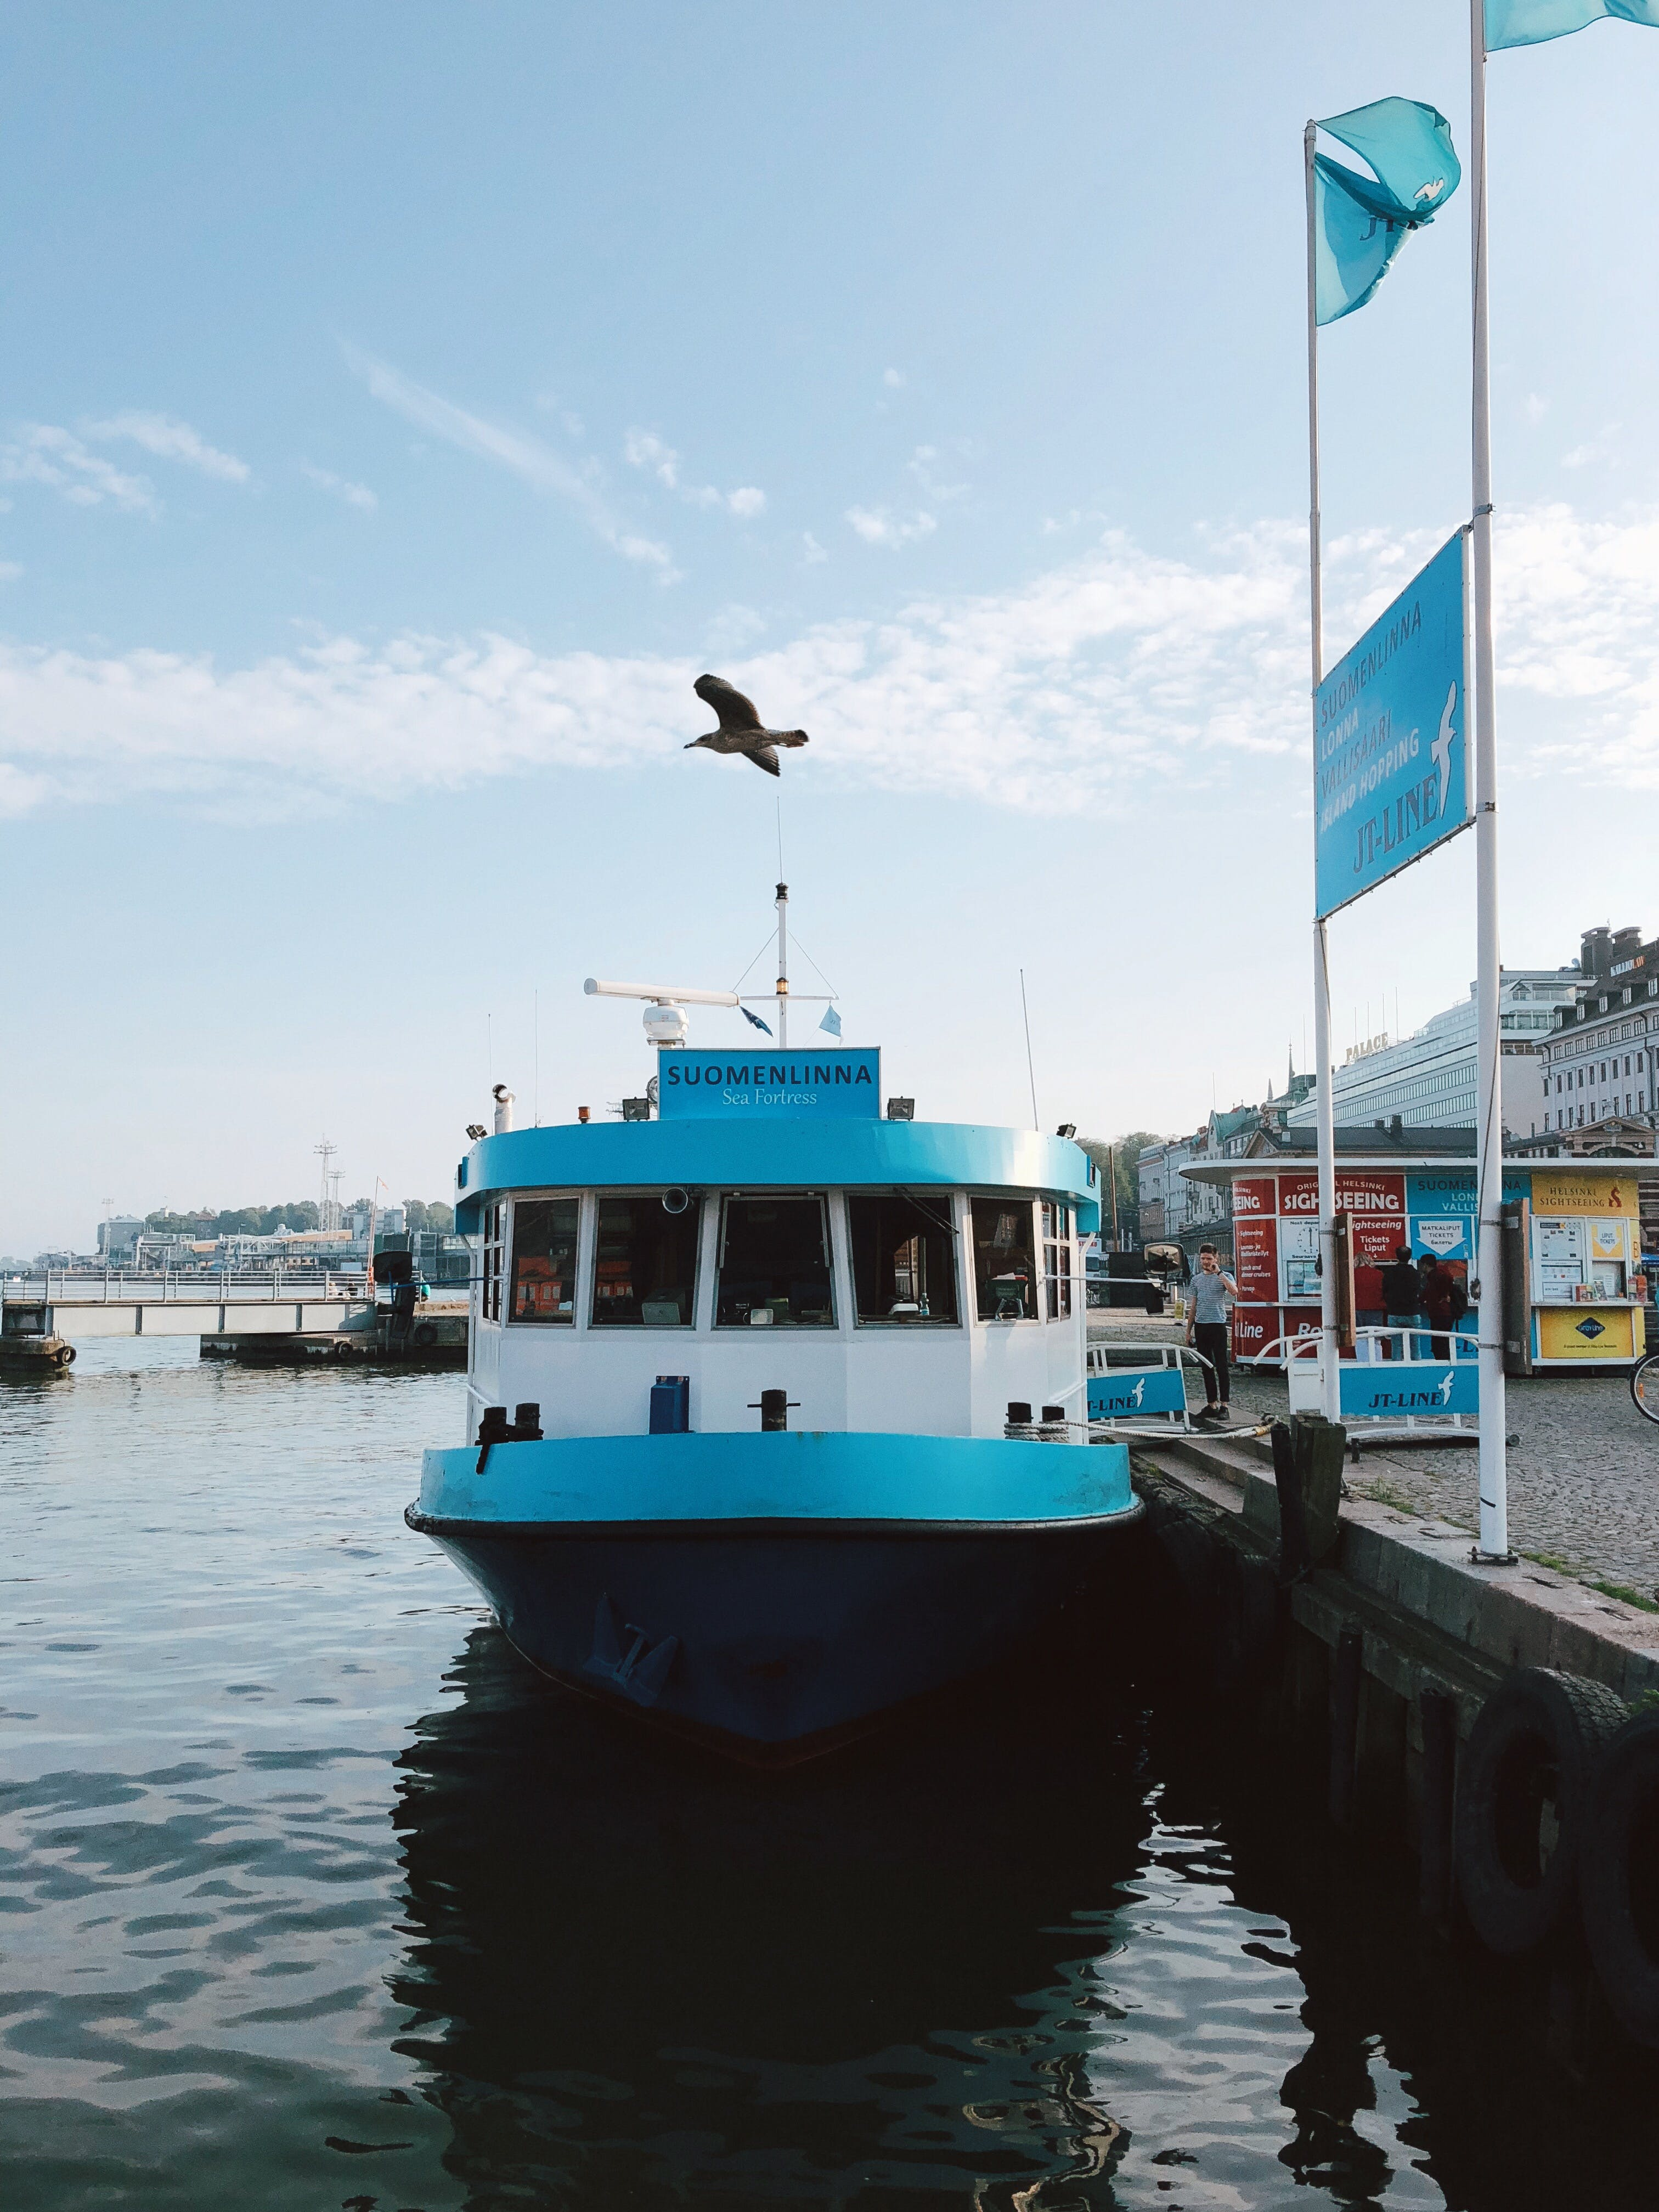 White and Teal Boat in Body of Water